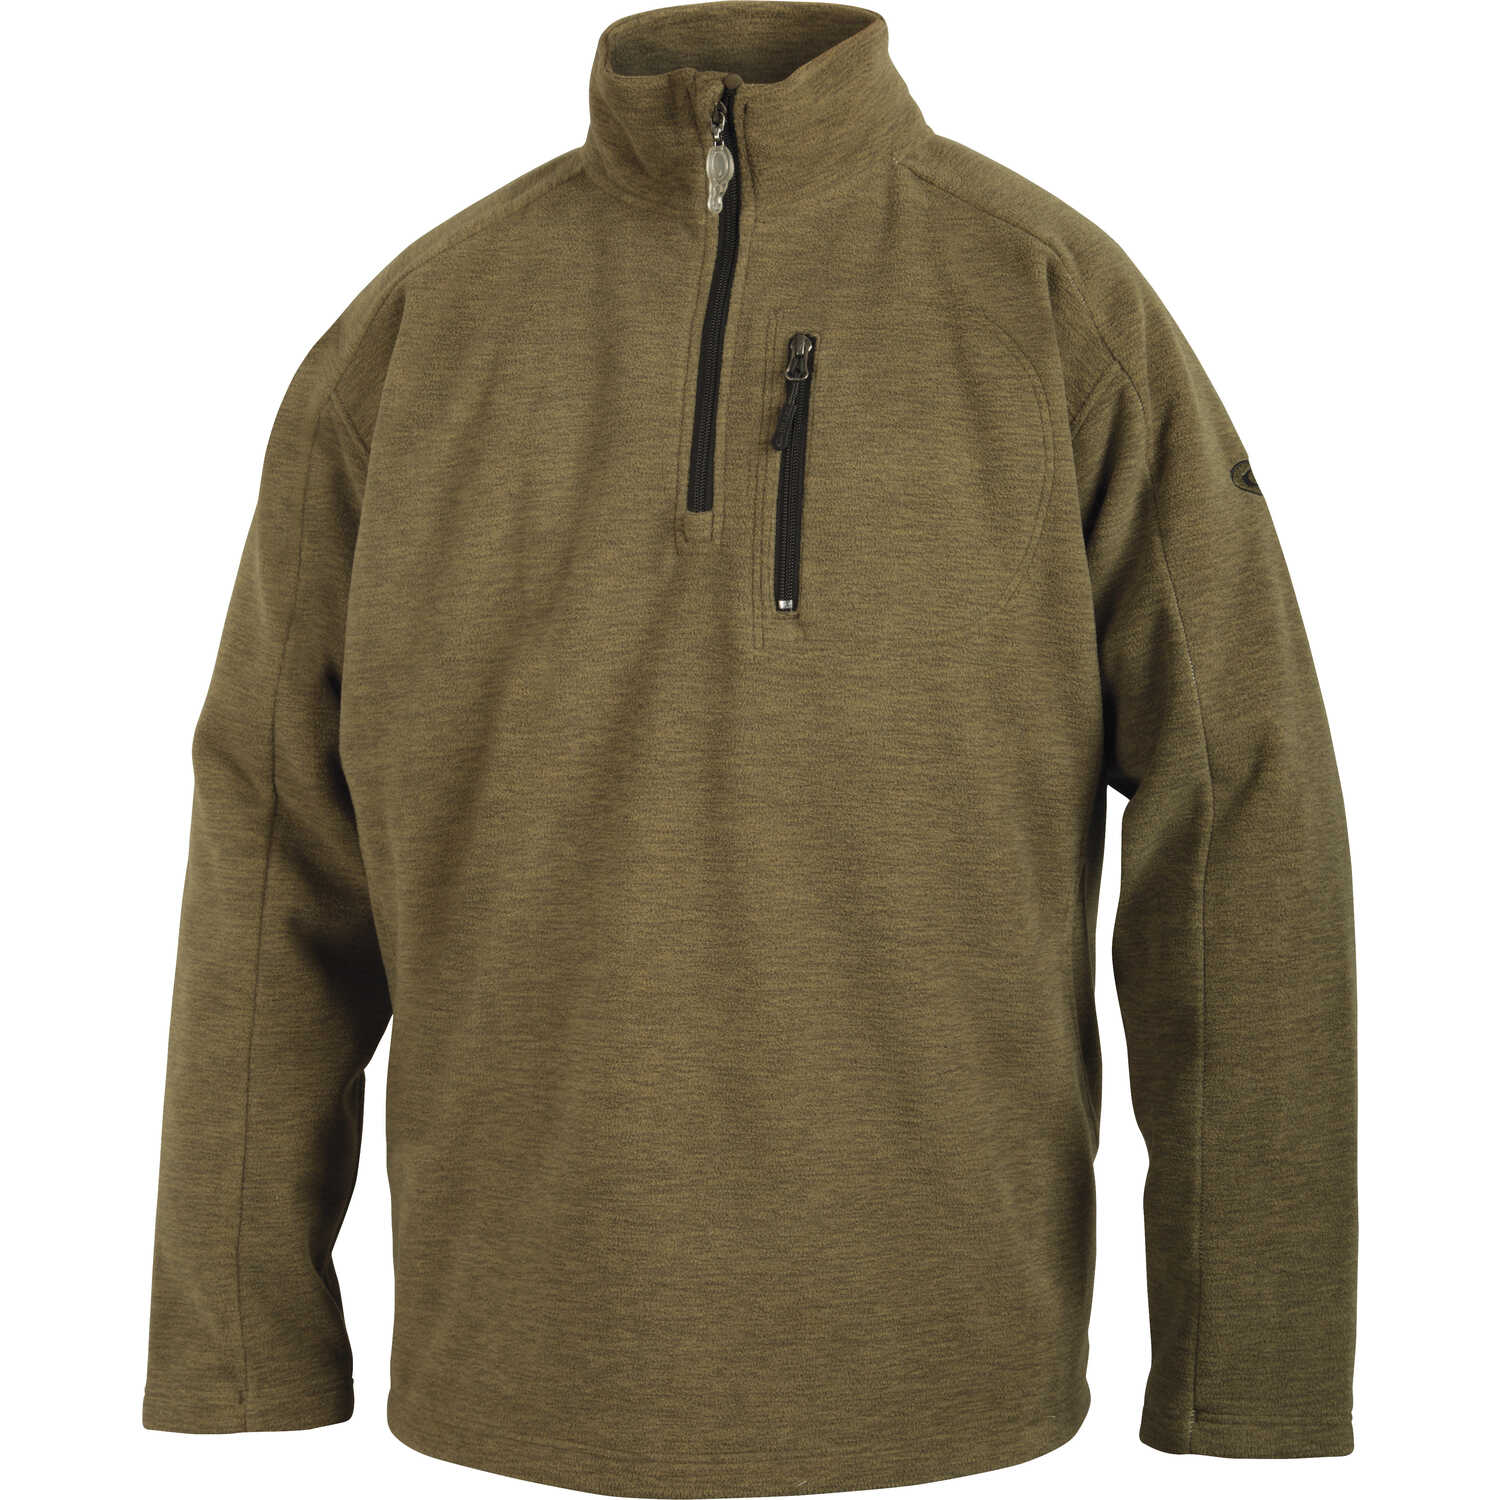 Drake  MST  XL  Long Sleeve  Men's  Quarter Zip  Heathered Sage  Pullover